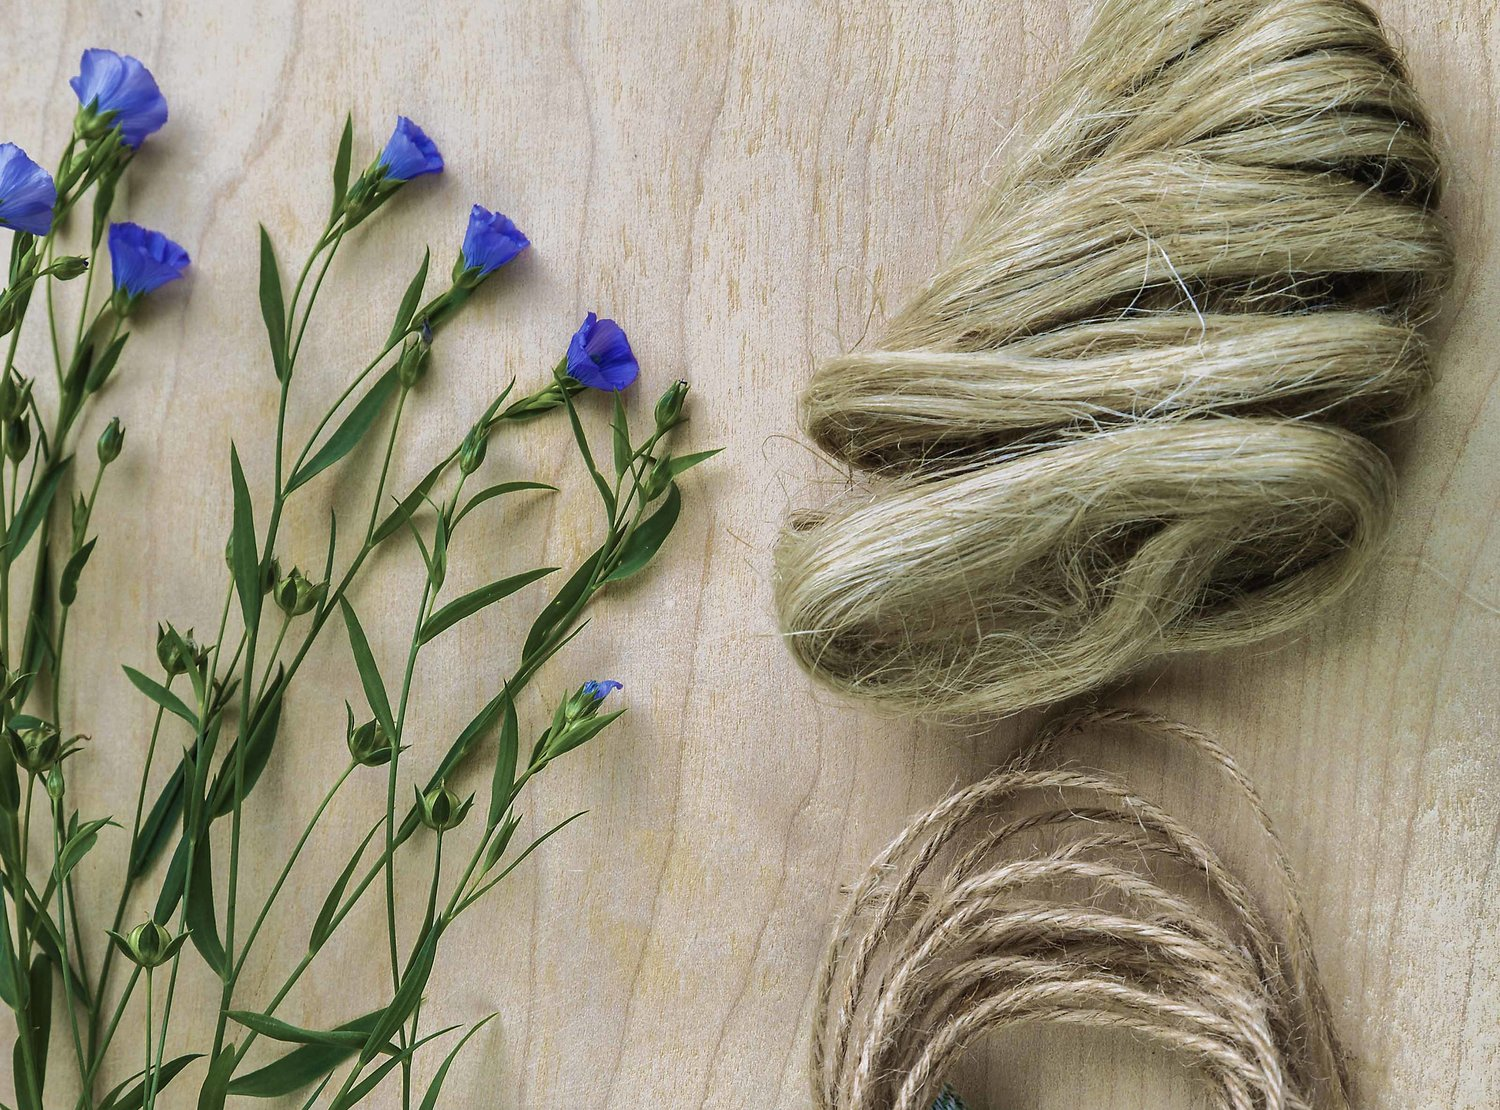 Stages of linen, from beautiful plant to fibre. Weirdly looks like hair…